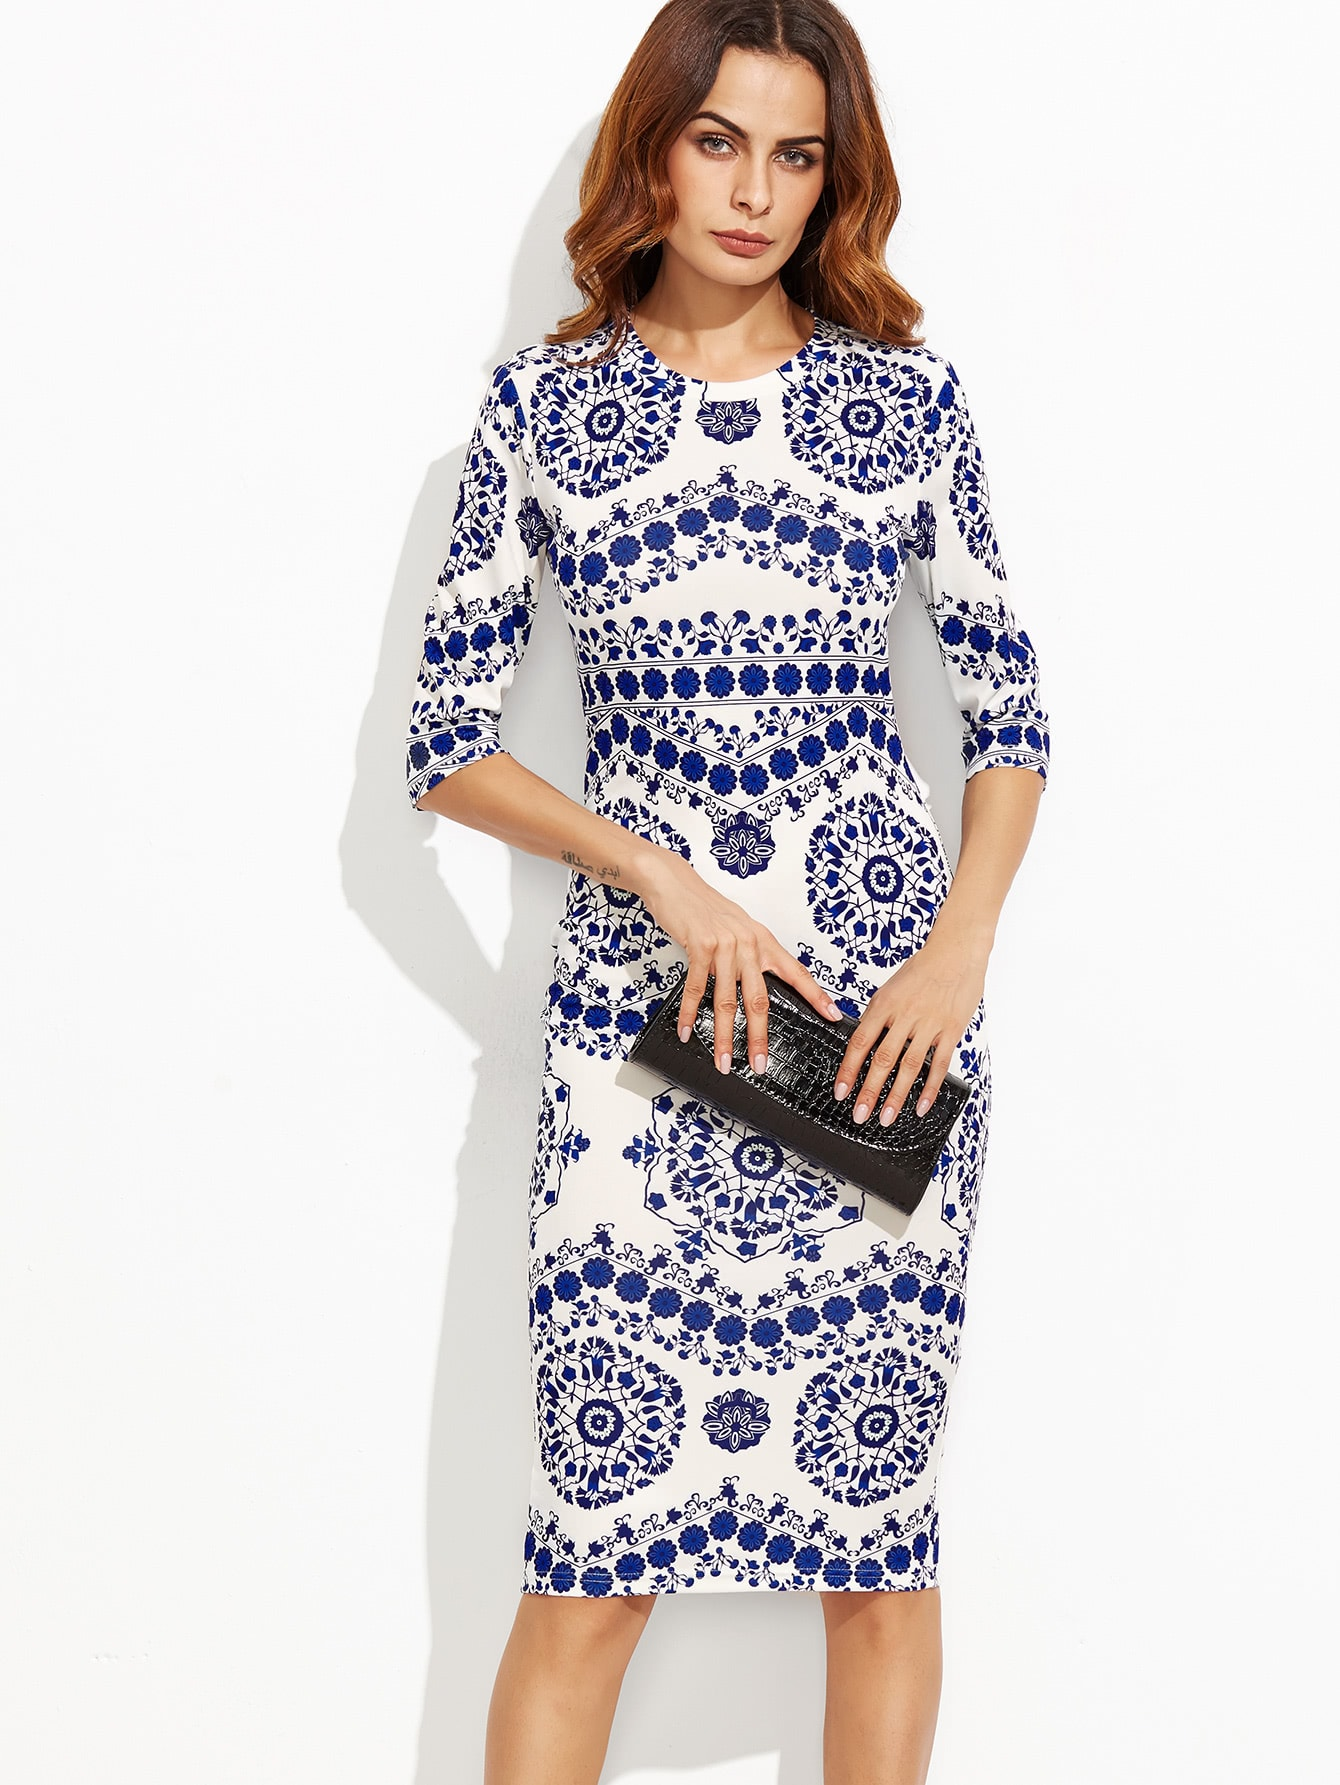 Porcelain Print Pencil Dress Shein Sheinside